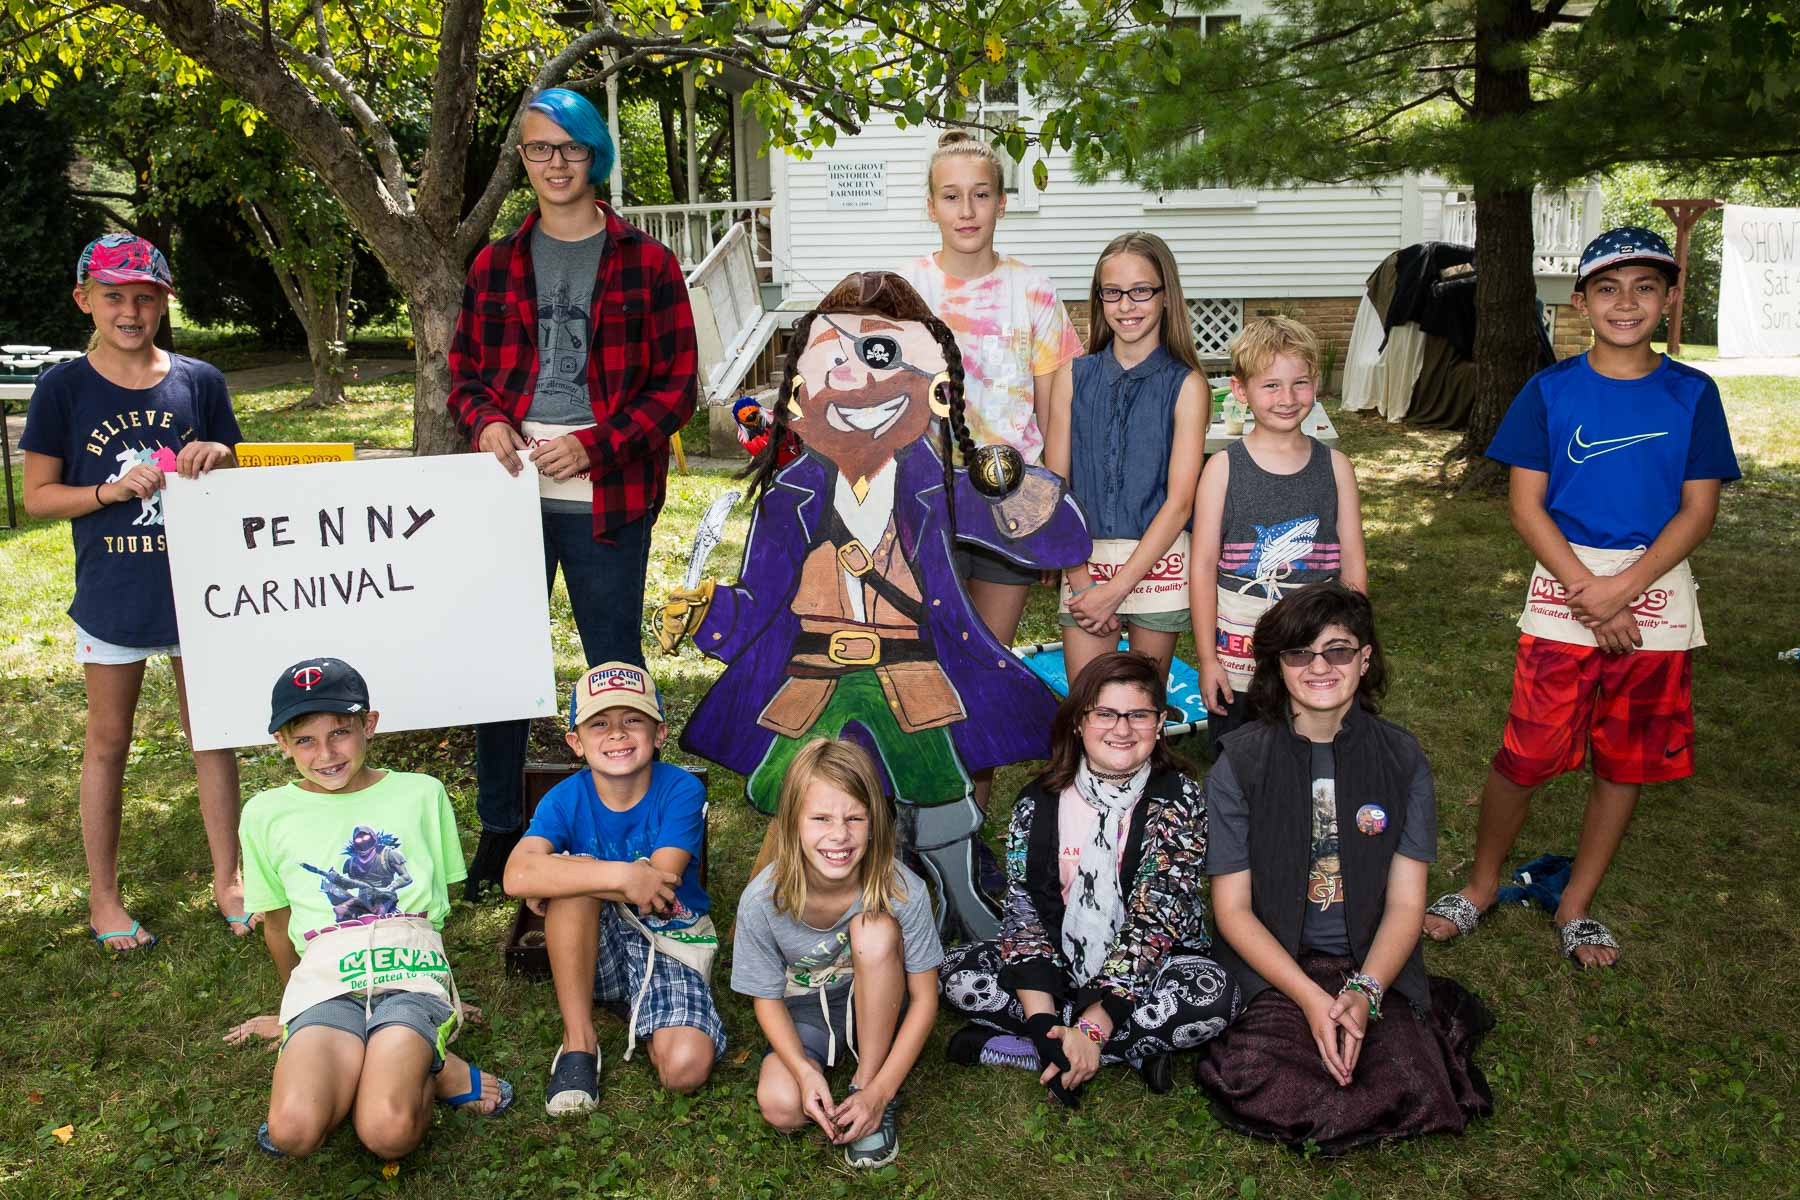 Pictured above are the awesome local kids who volunteered to help run the games for the younger kids at the Historical Society Penny Carnival.